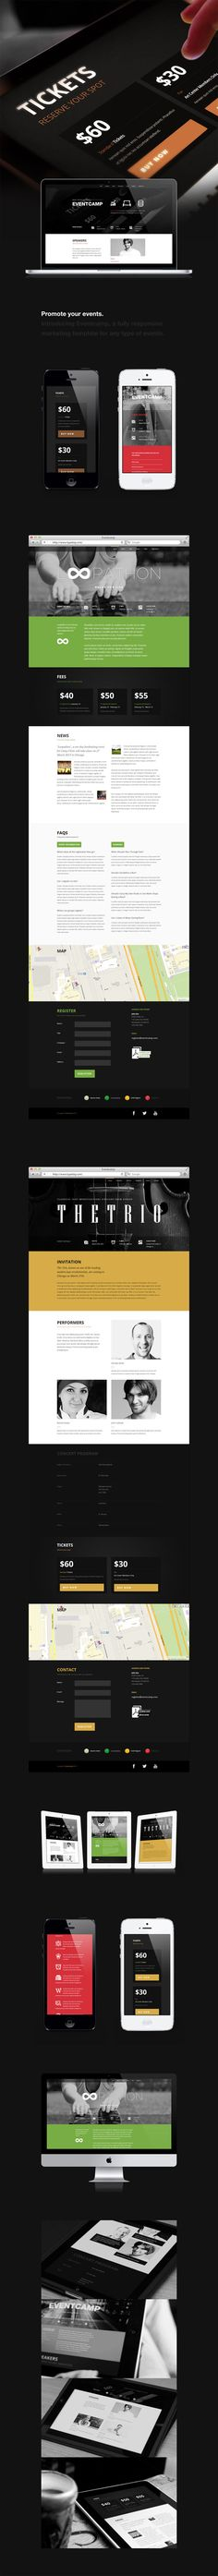 "Eventcamp by Ye Joo Park, via Behance *** ""Eventcamp"" is a one-page marketing HTML template that helps markets to promote events."